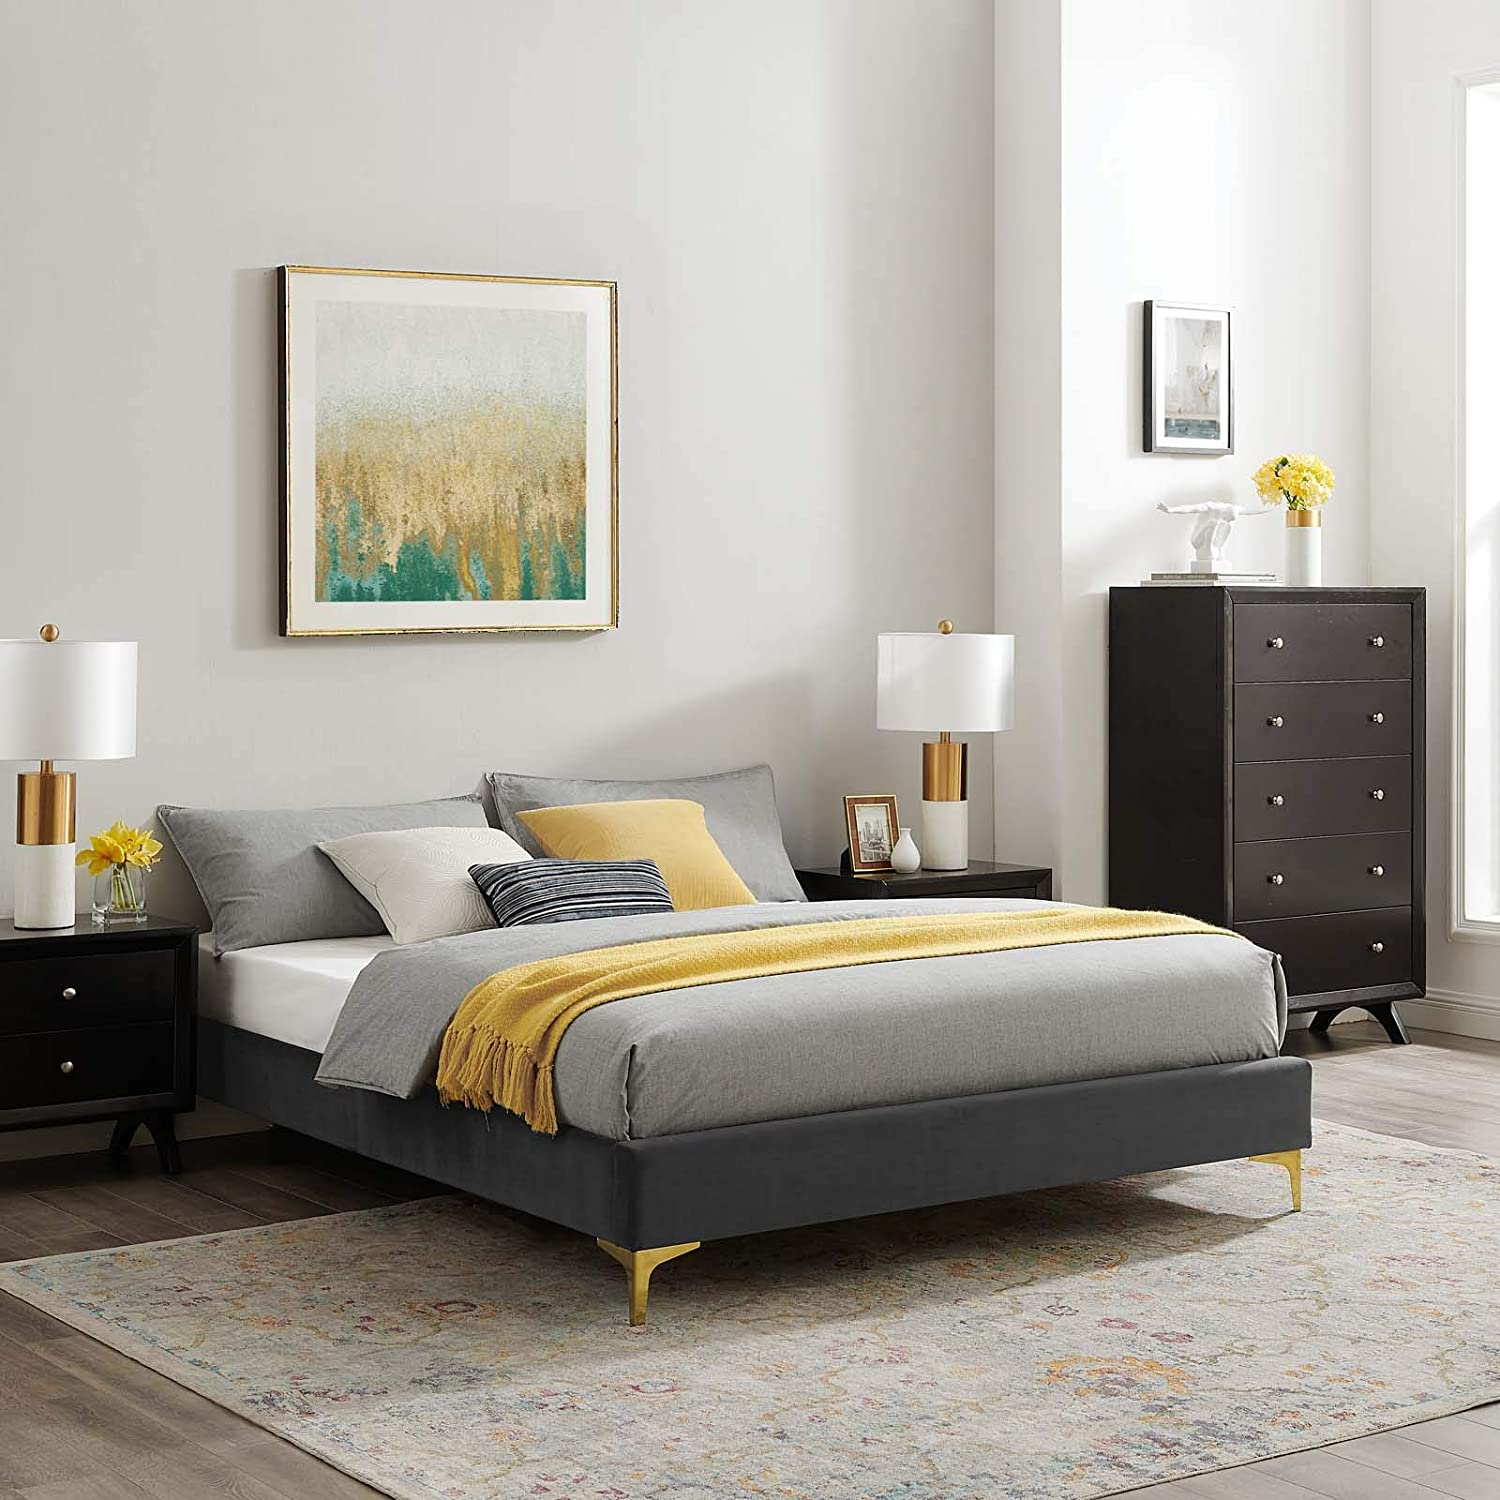 Modway MOD-6275-CHA Sutton Queen Performance Velvet Bed Frame, Charcoal